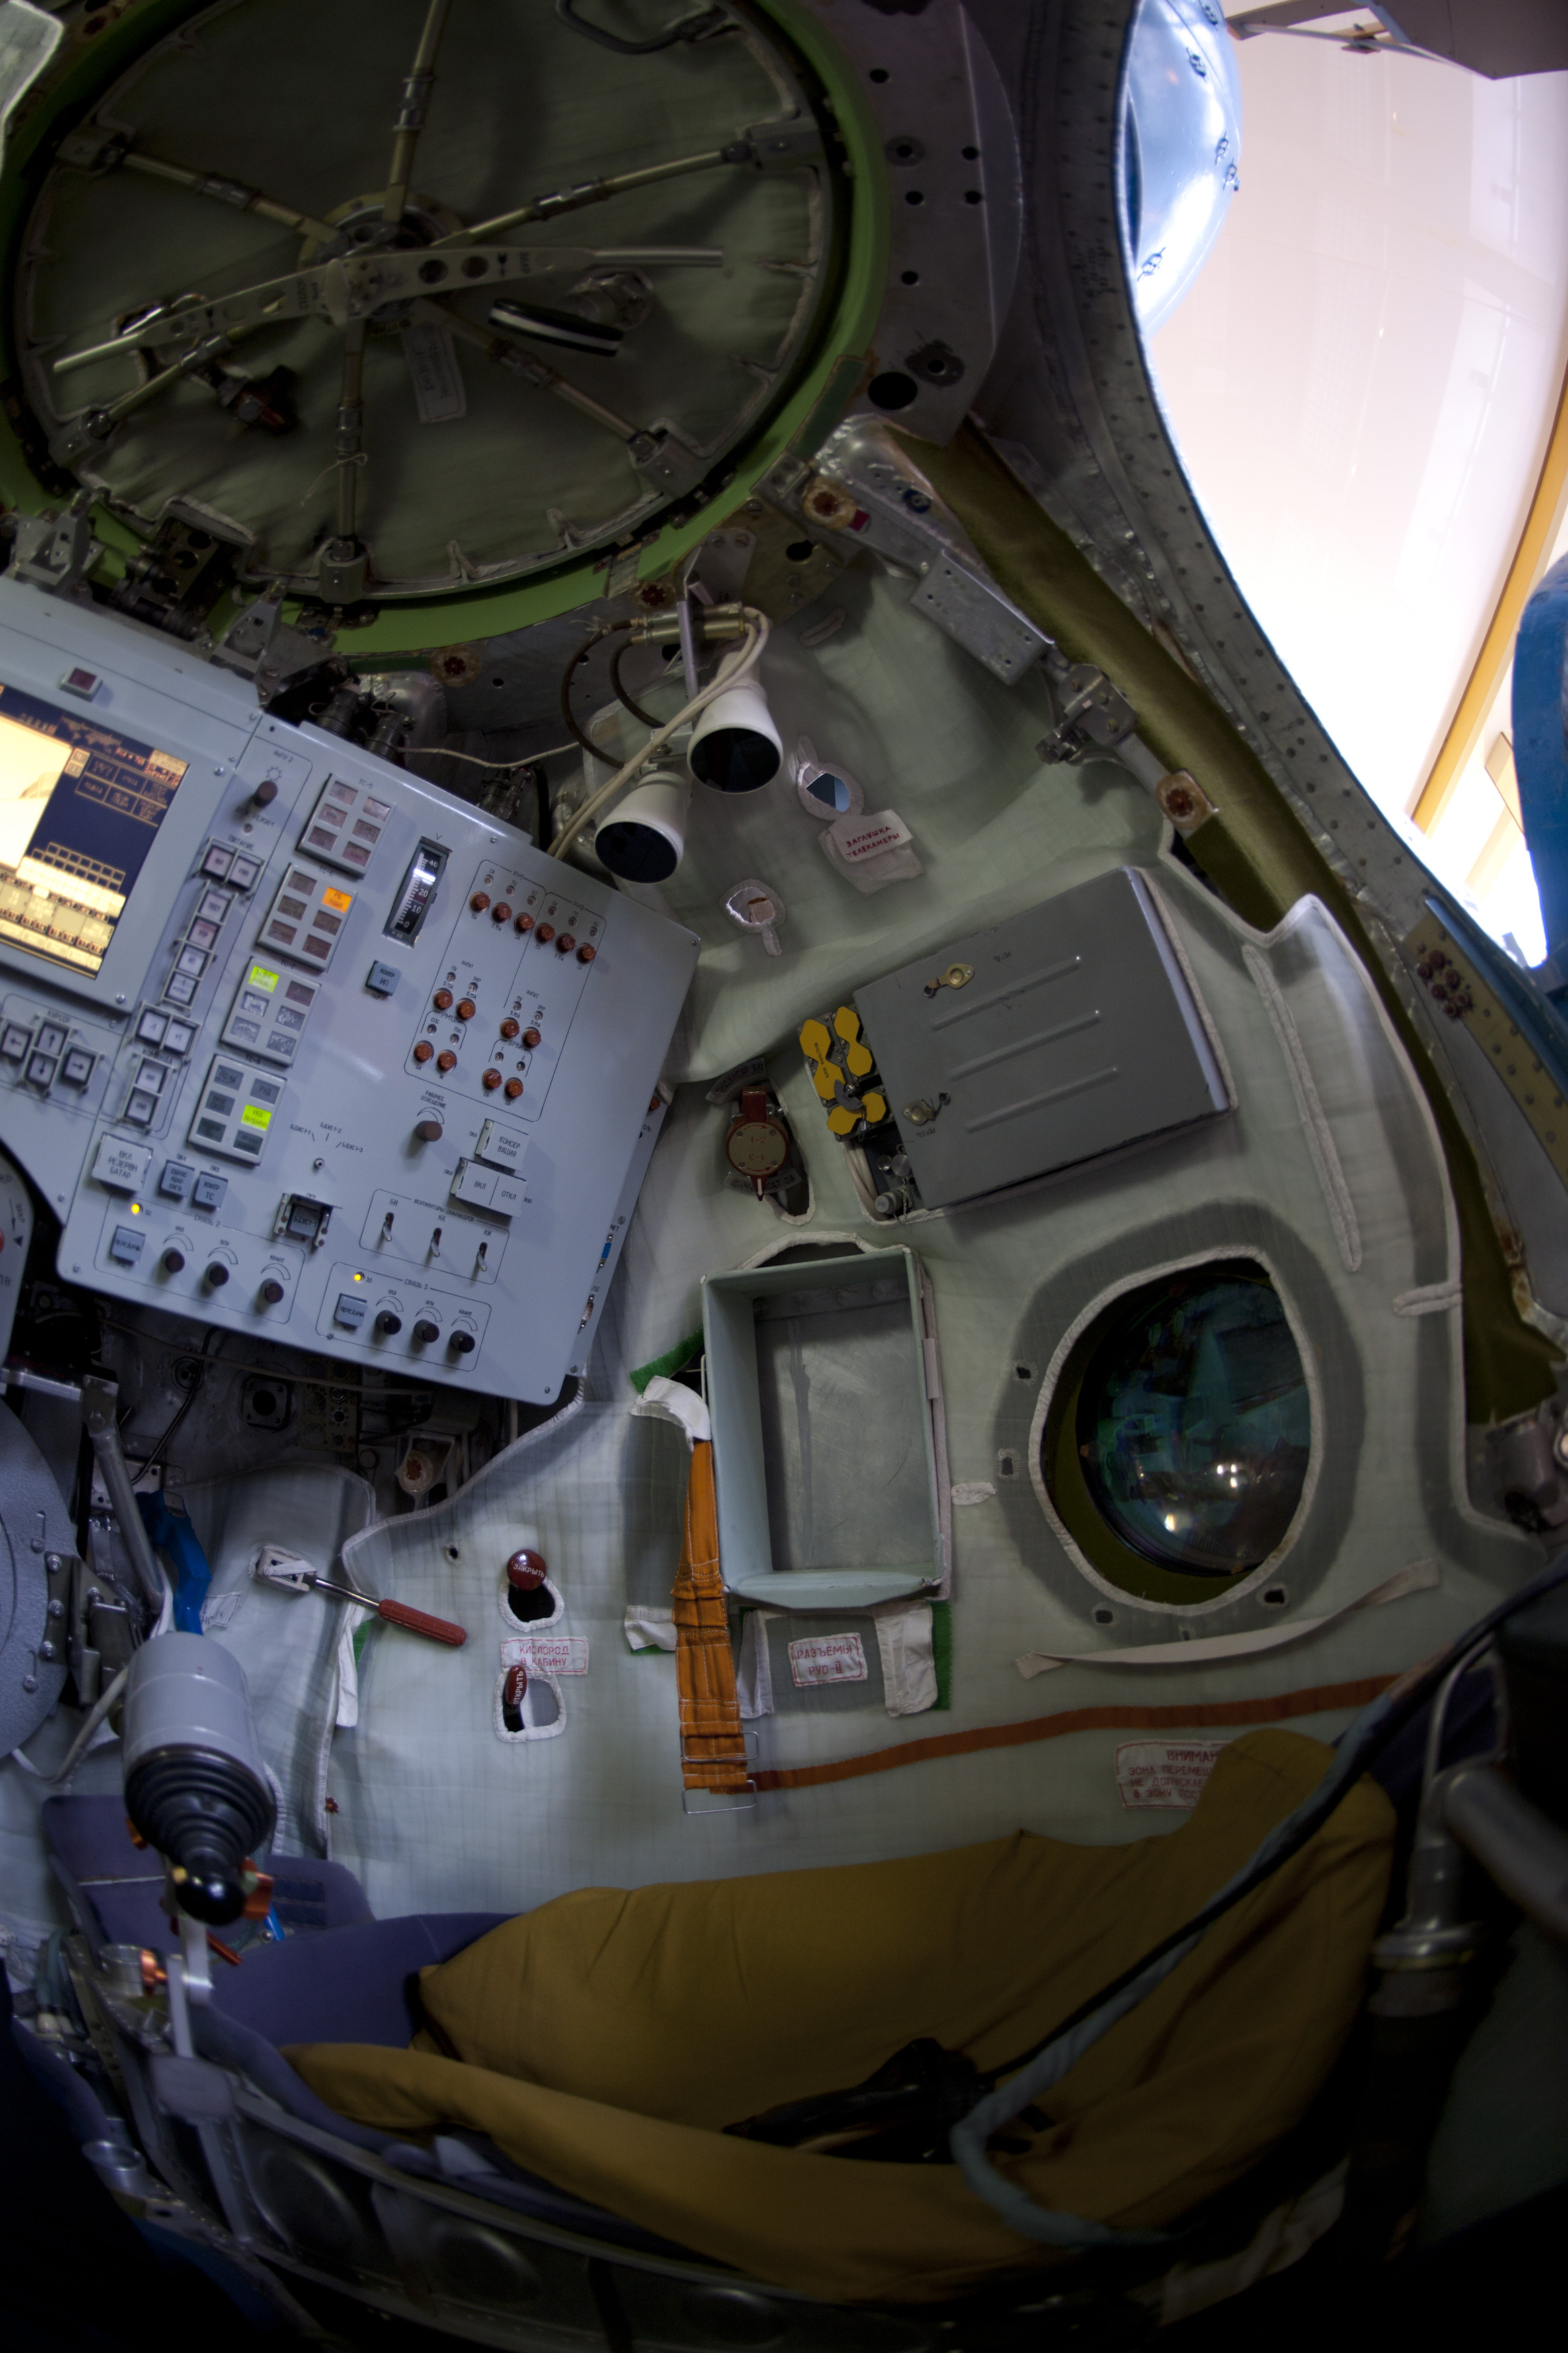 space in images - 2010 - 11